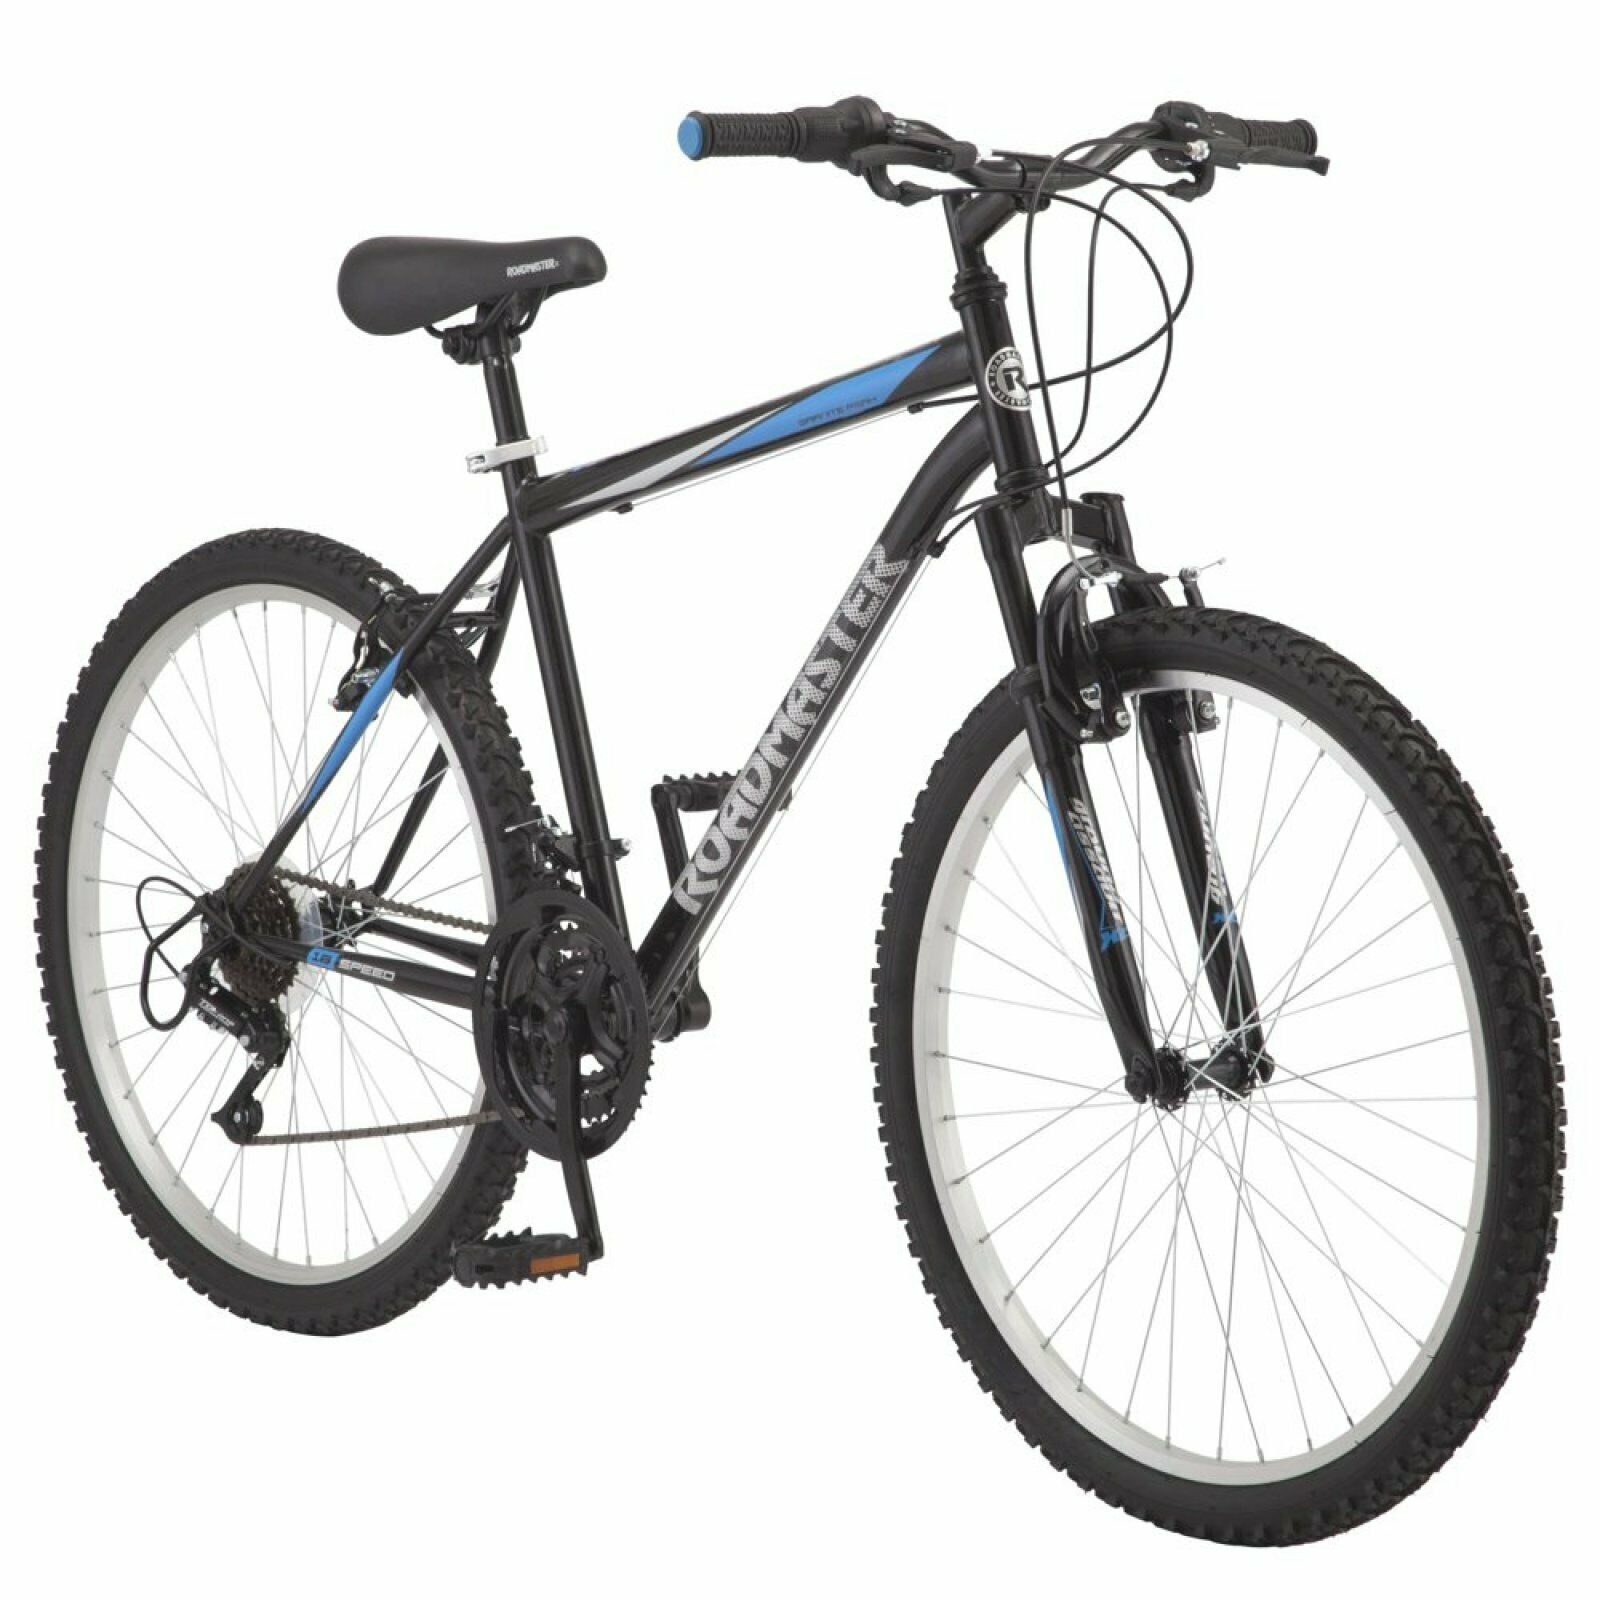 Men's Mountain Bike 26 Inch Wheels Steel Mountain Frame 18 S